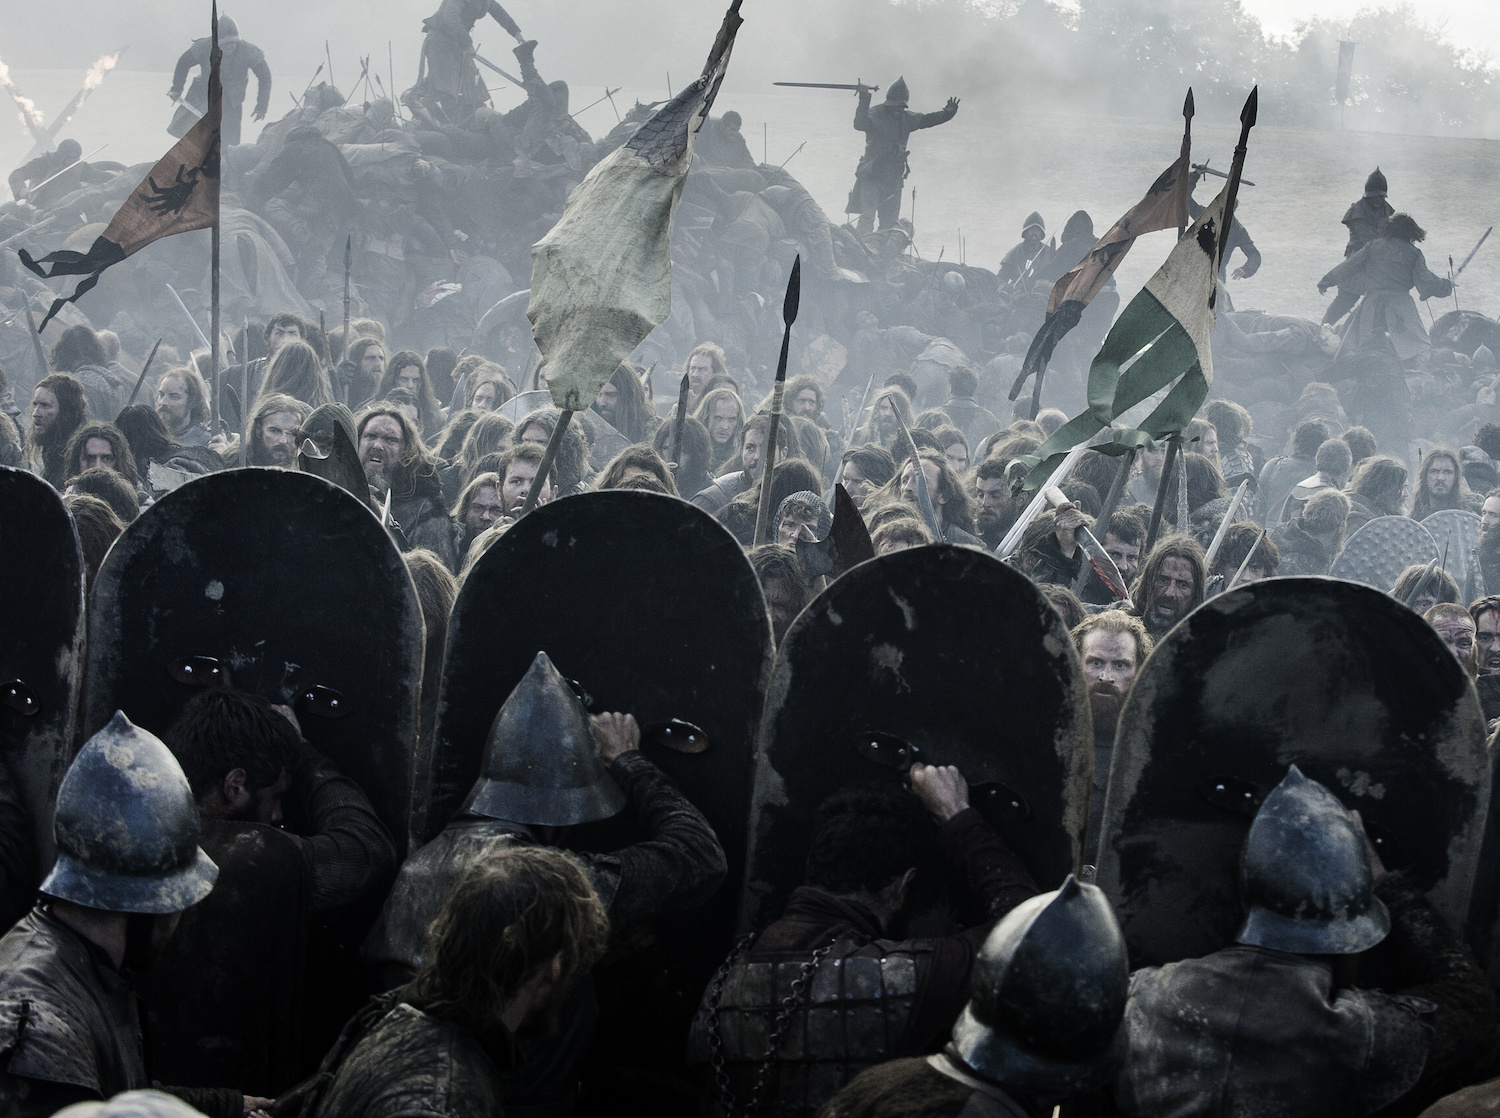 Game of Thrones: analisi storica di una battaglia epica